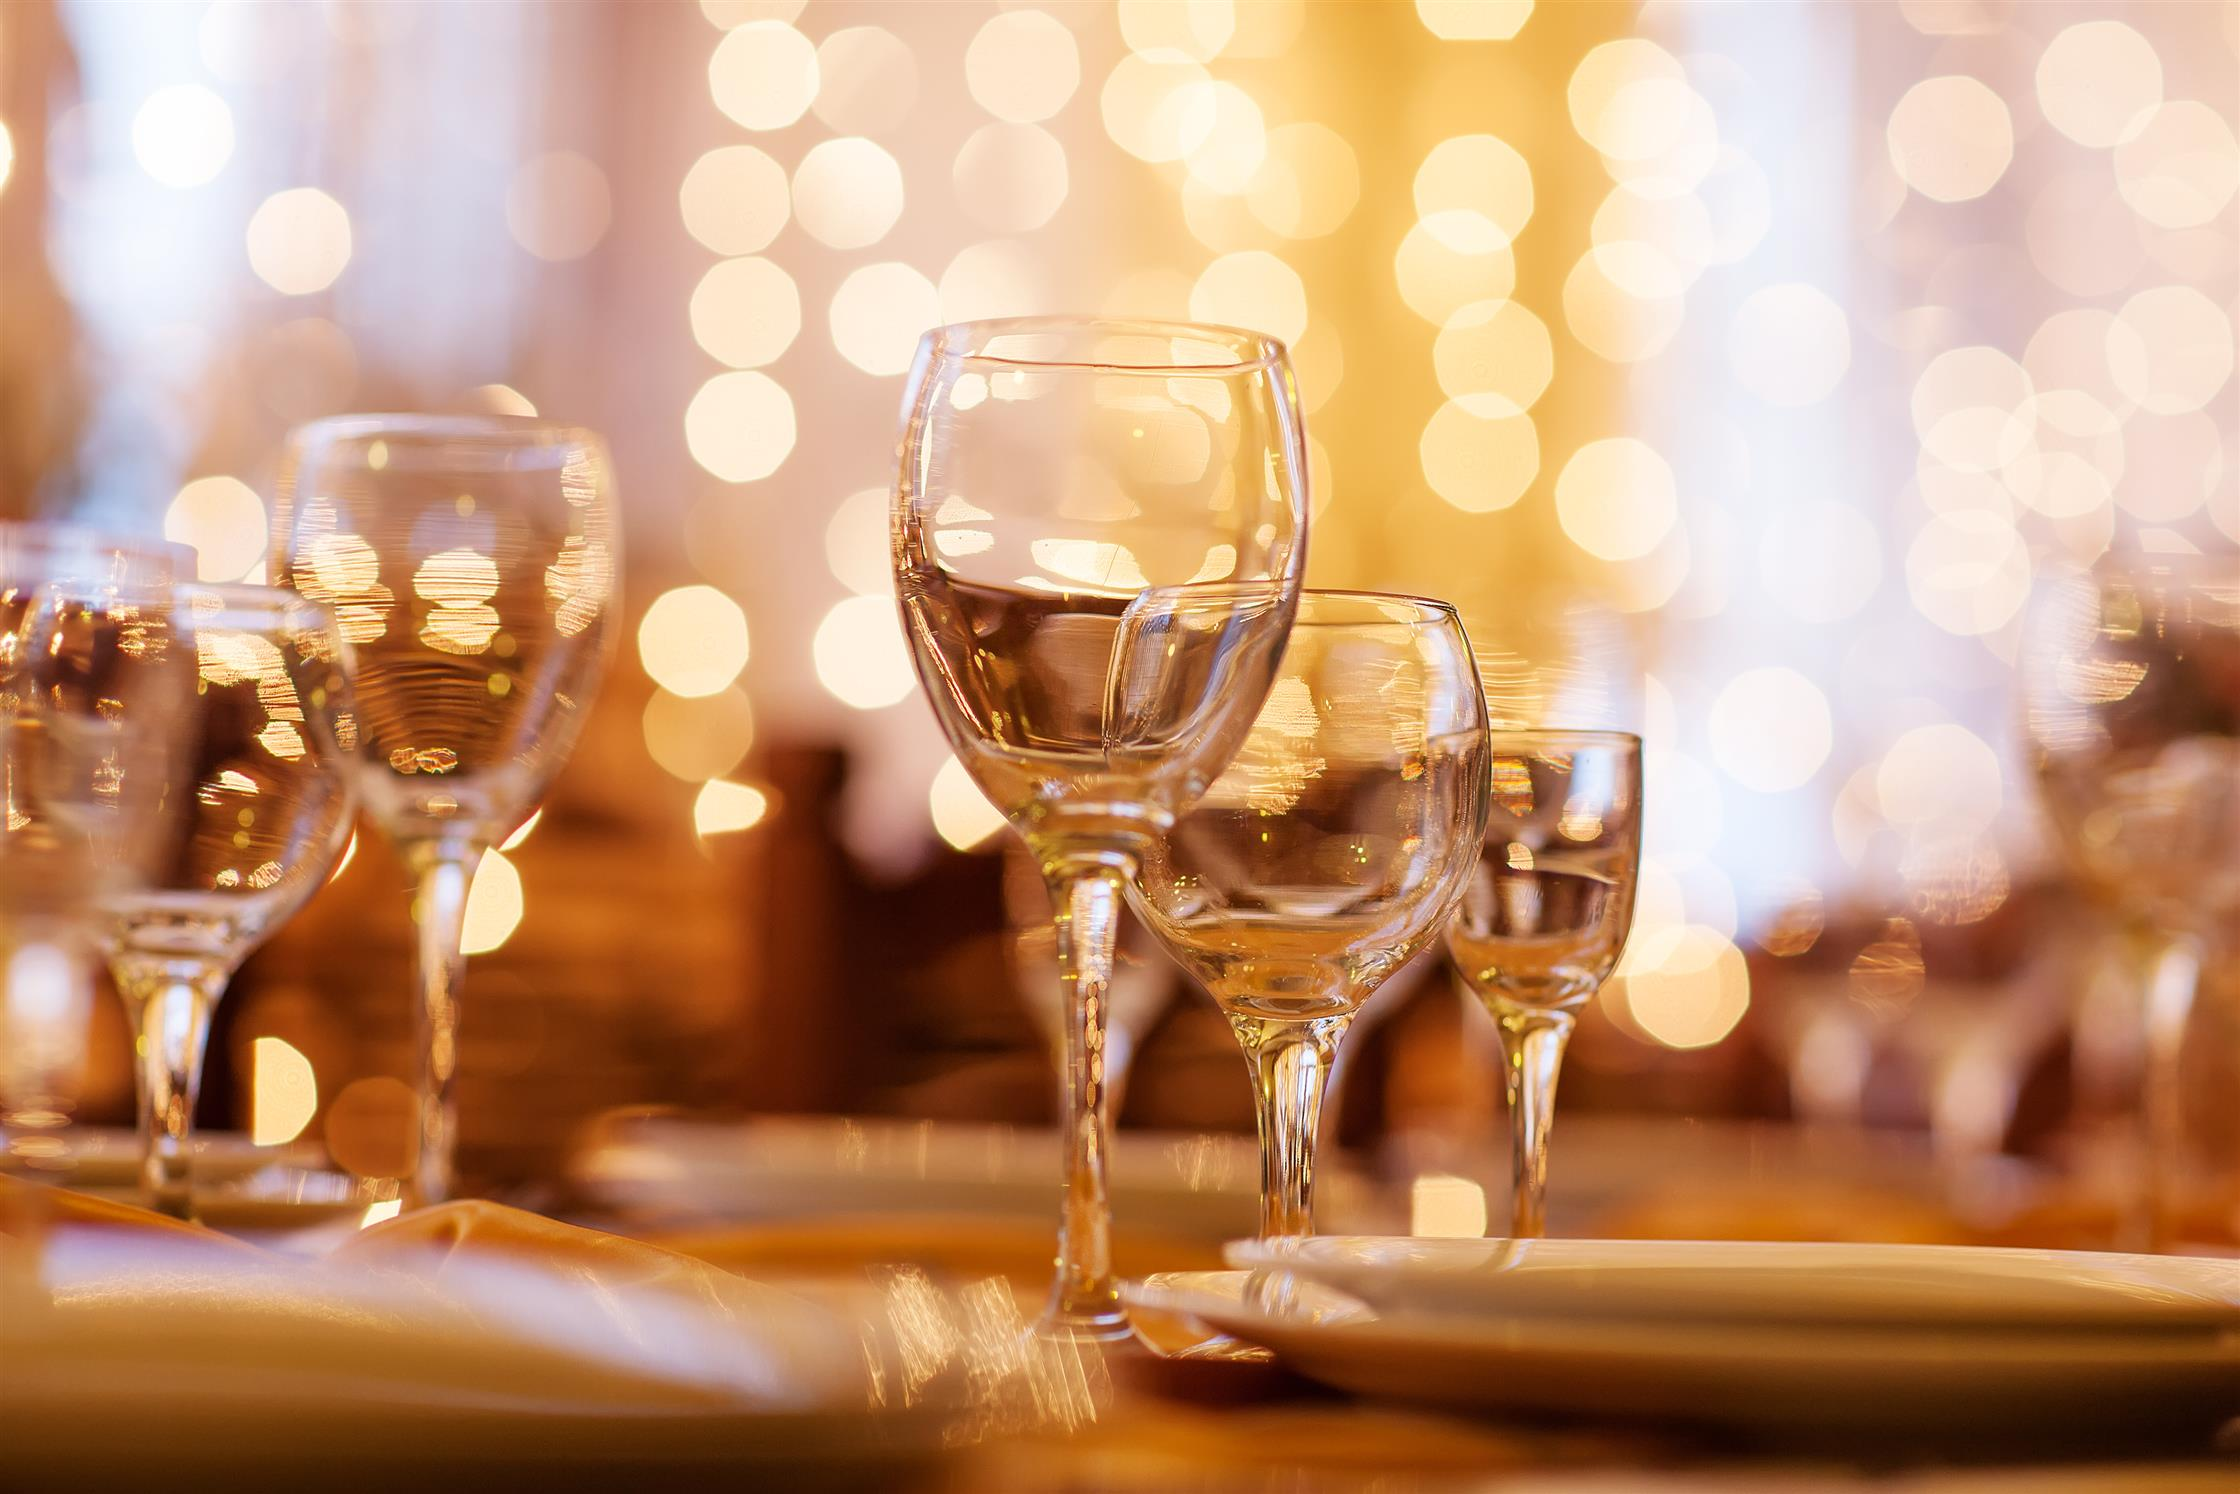 Wine glasses and dish on table with golden lighting